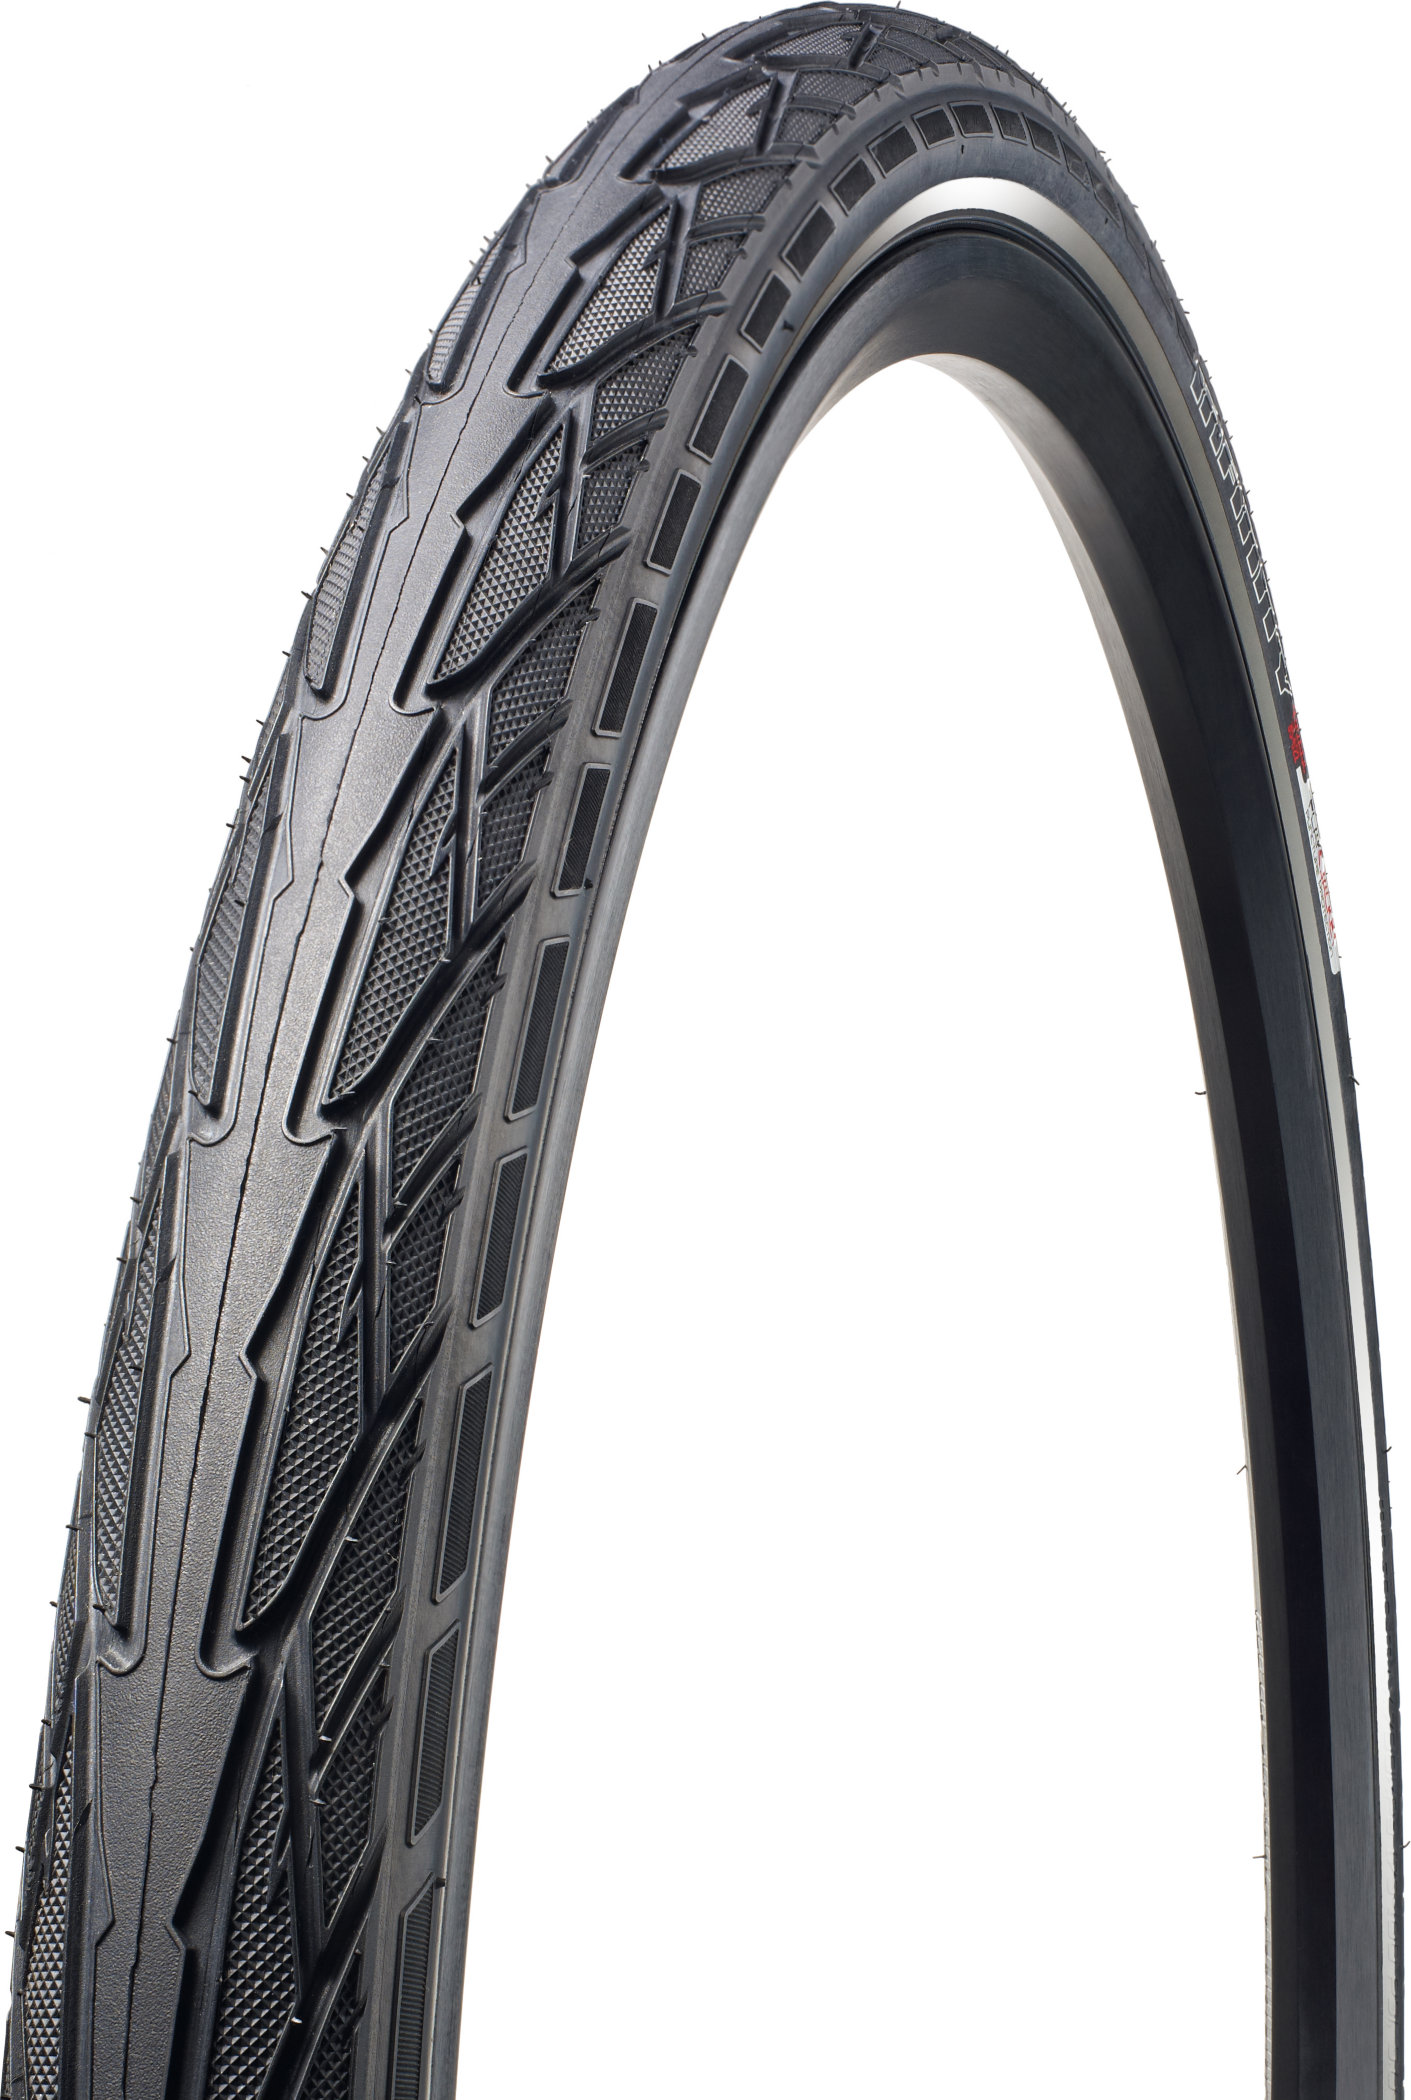 SPECIALIZED INFINITY ARM REFLECT TIRE 700X35C - Alpha Bikes